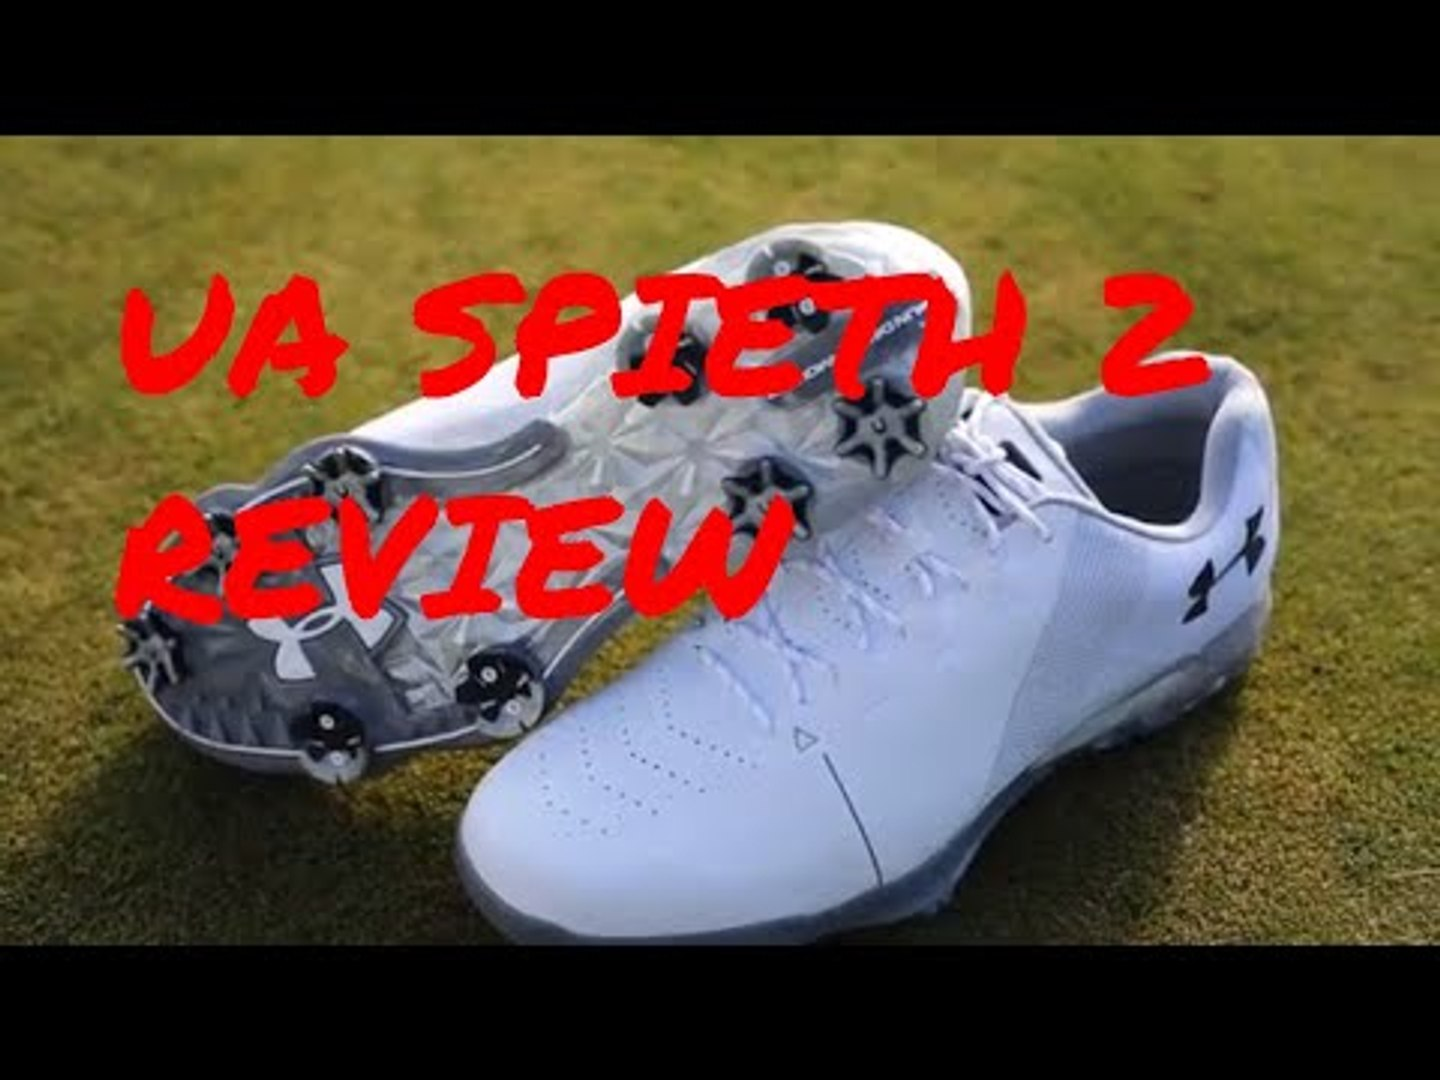 pintor Ineficiente Incentivo  Under Armour Spieth 2 golf shoe review: lighter and more comfortable -  video Dailymotion